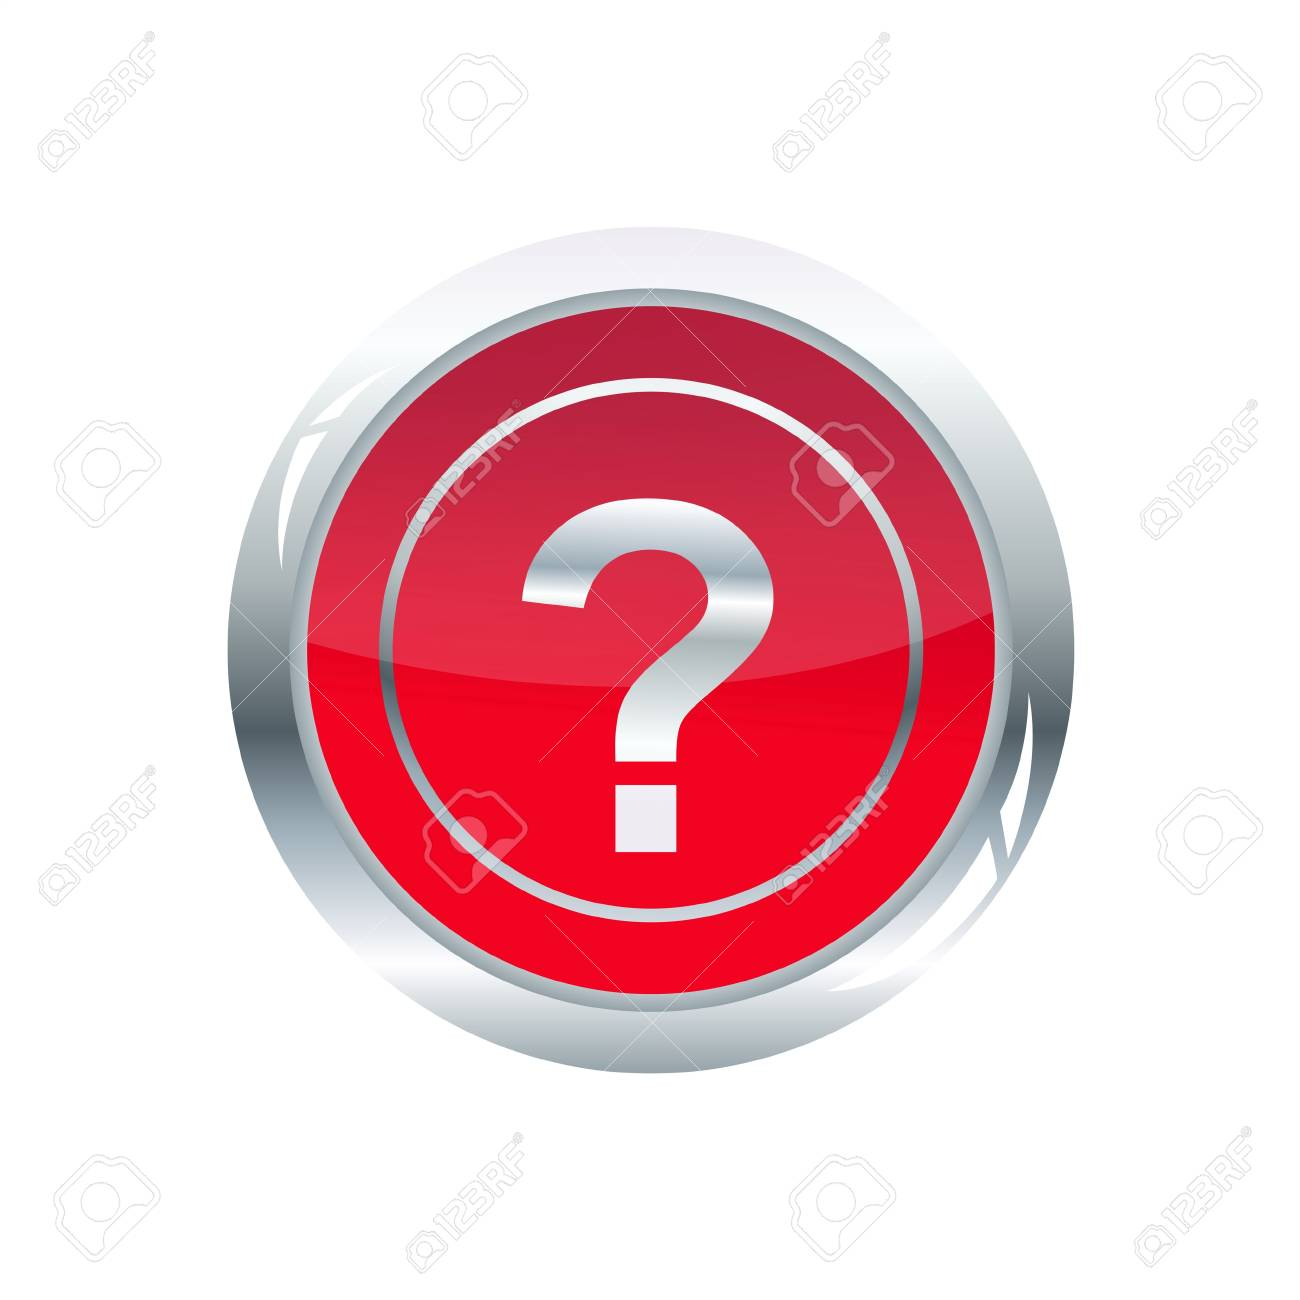 illustration of question mark glossy icon on white background Stock Illustration - 7743255